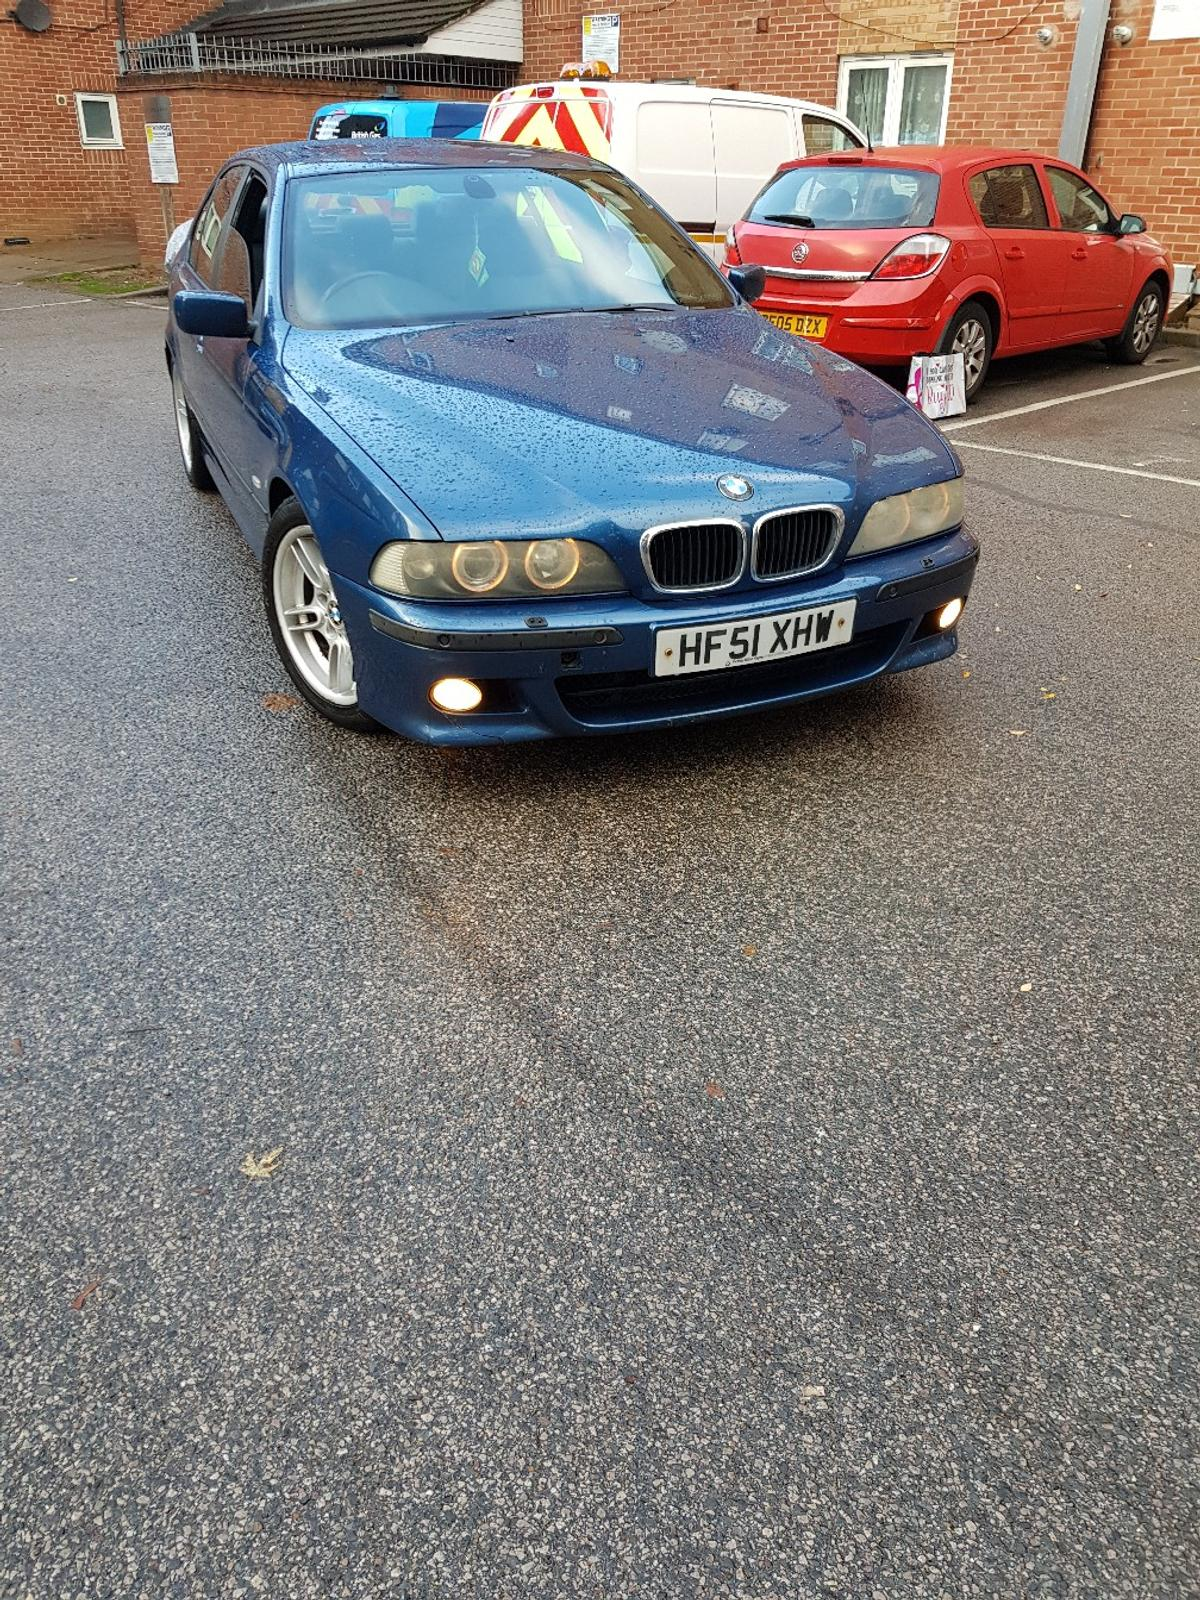 bmw e39 530d msport manual in N14 Enfield for £1,400 00 for sale